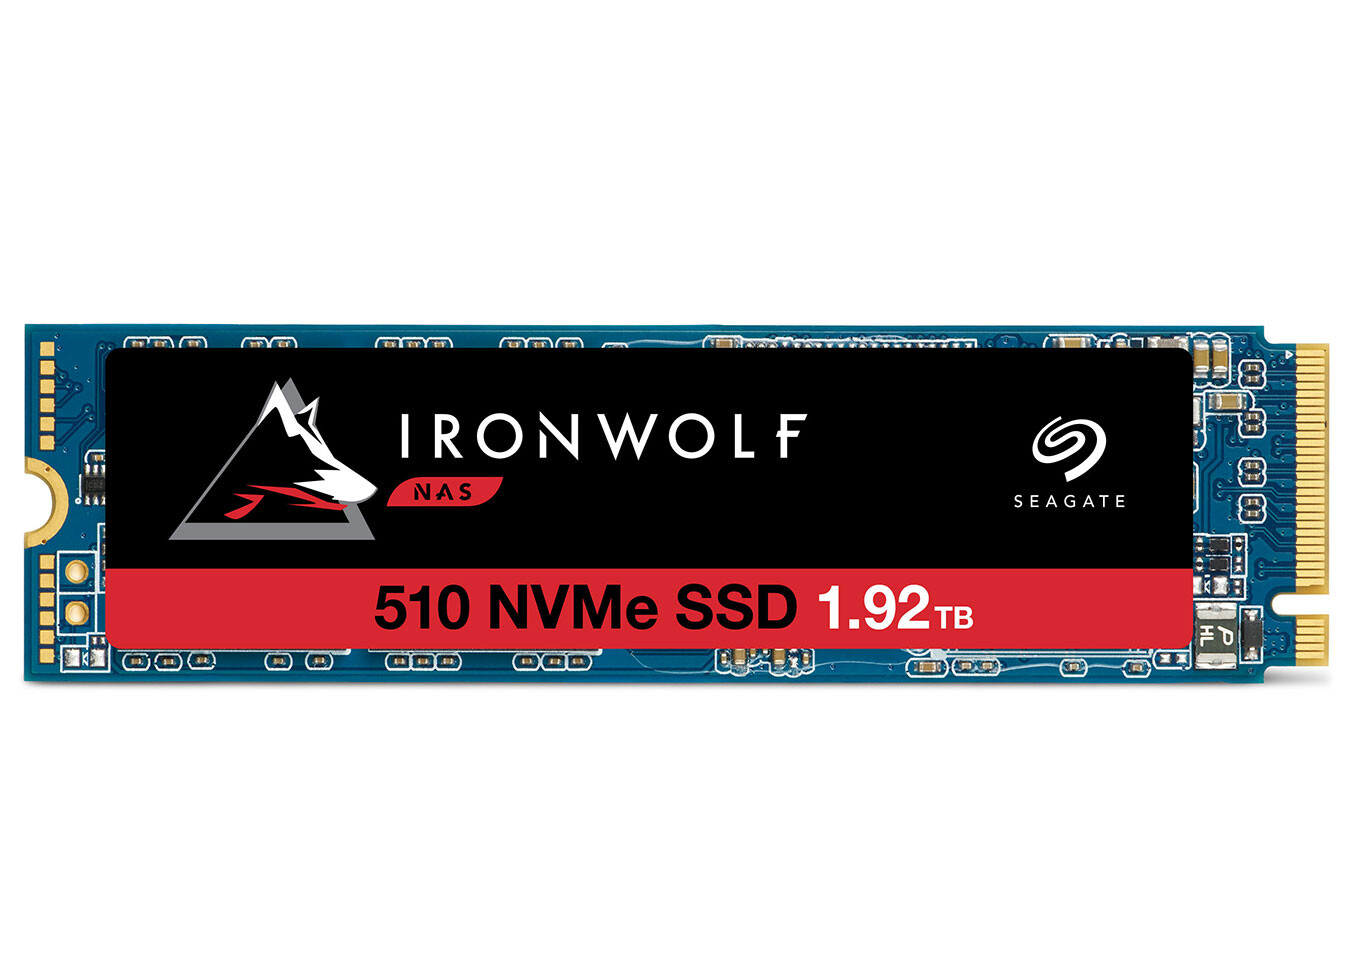 SSD Review: Seagate IronWolf 510 SSD Should I Go For It?